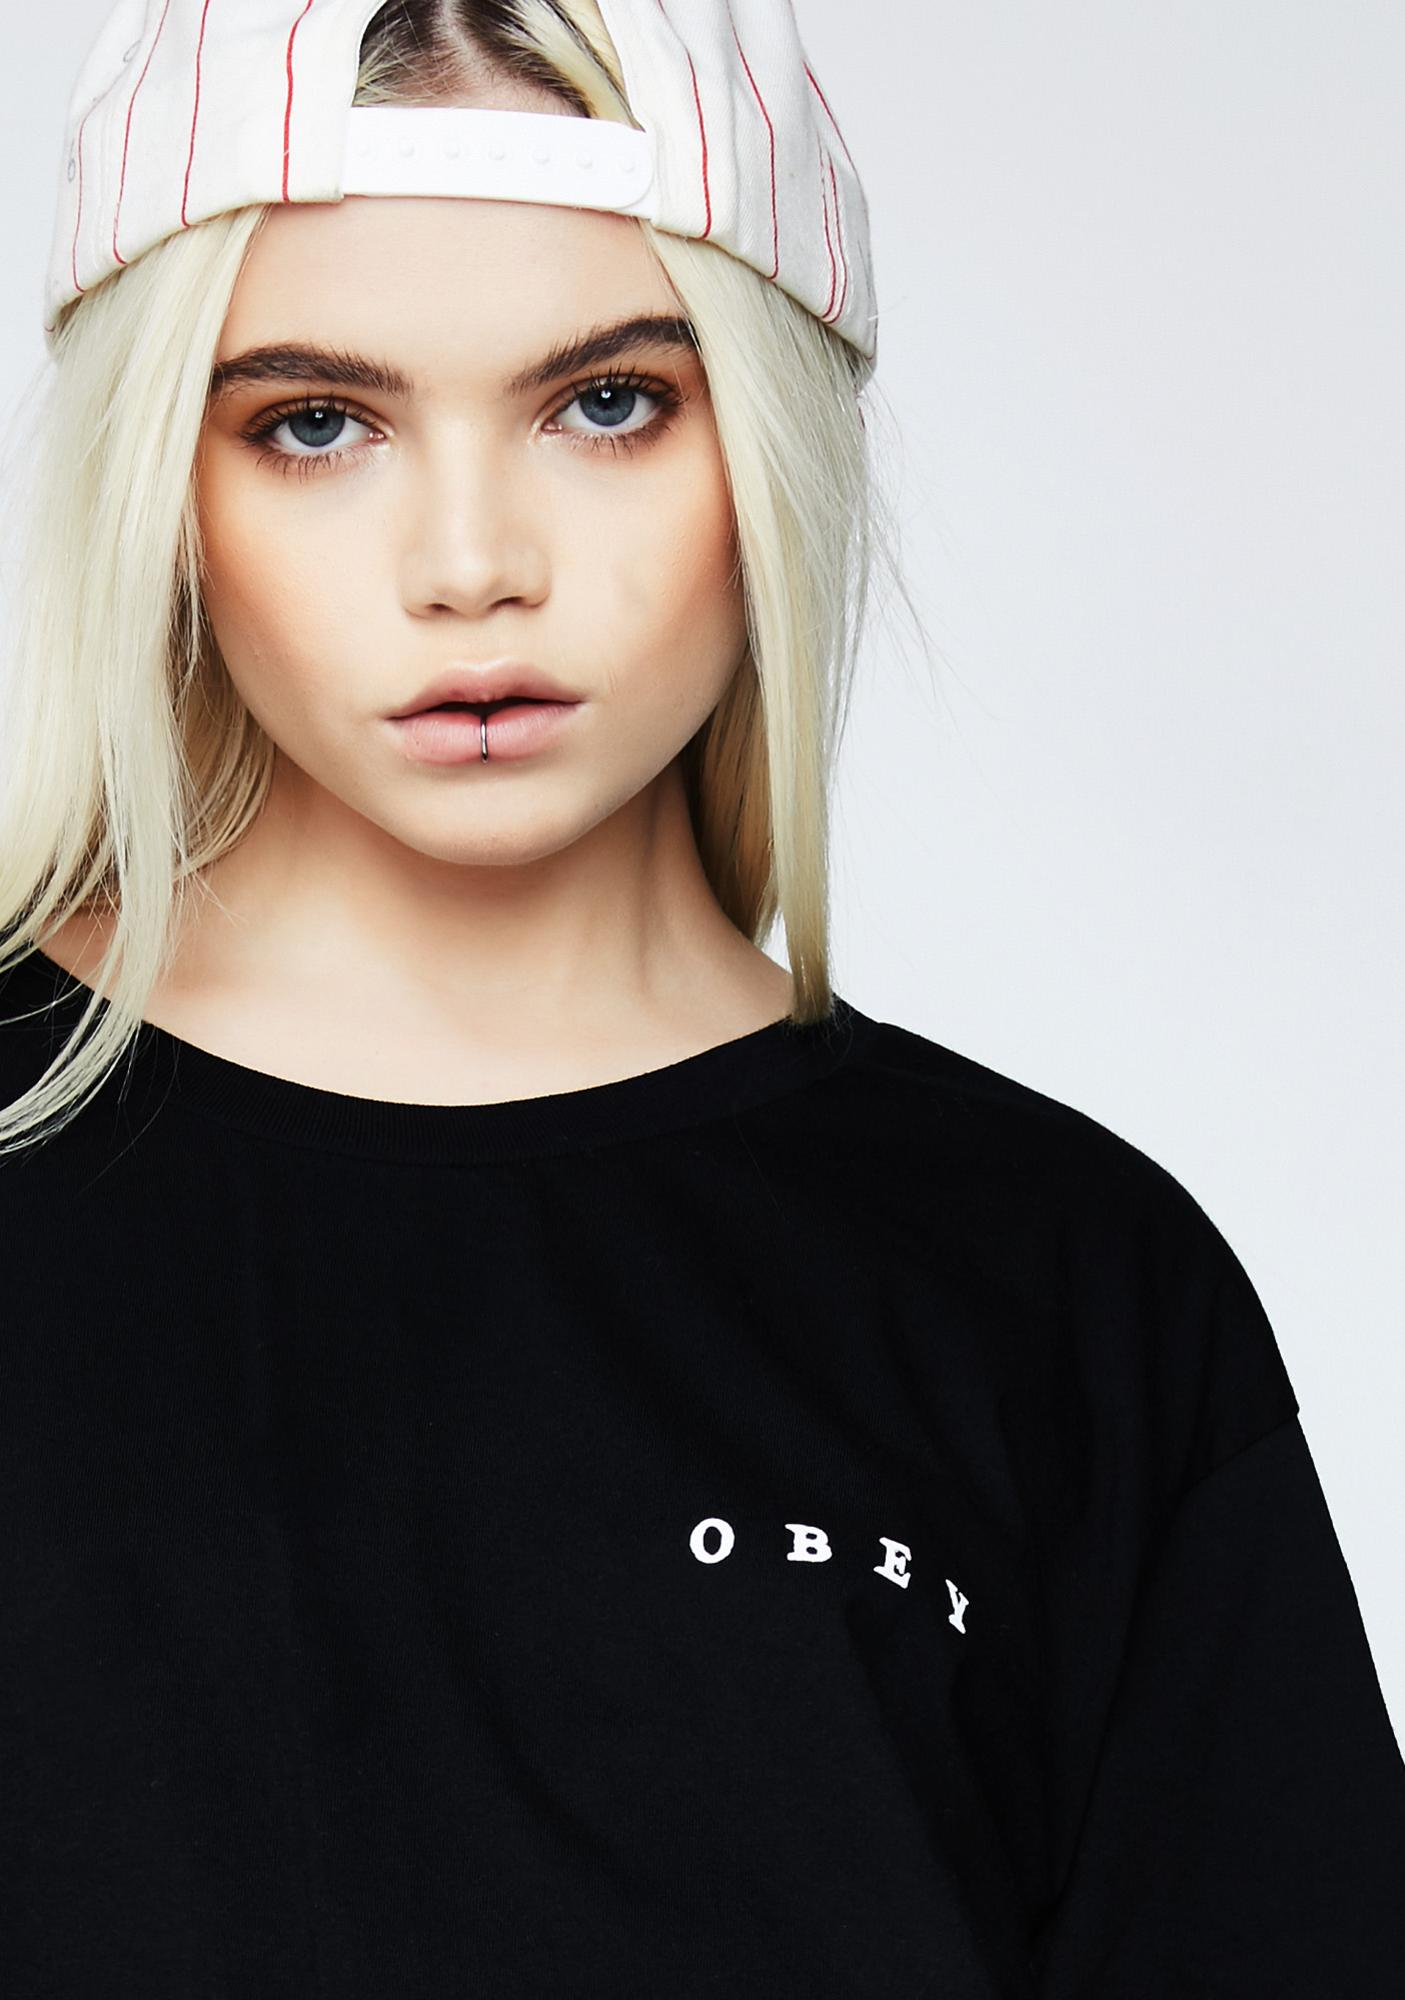 Obey Fight With Words Tee